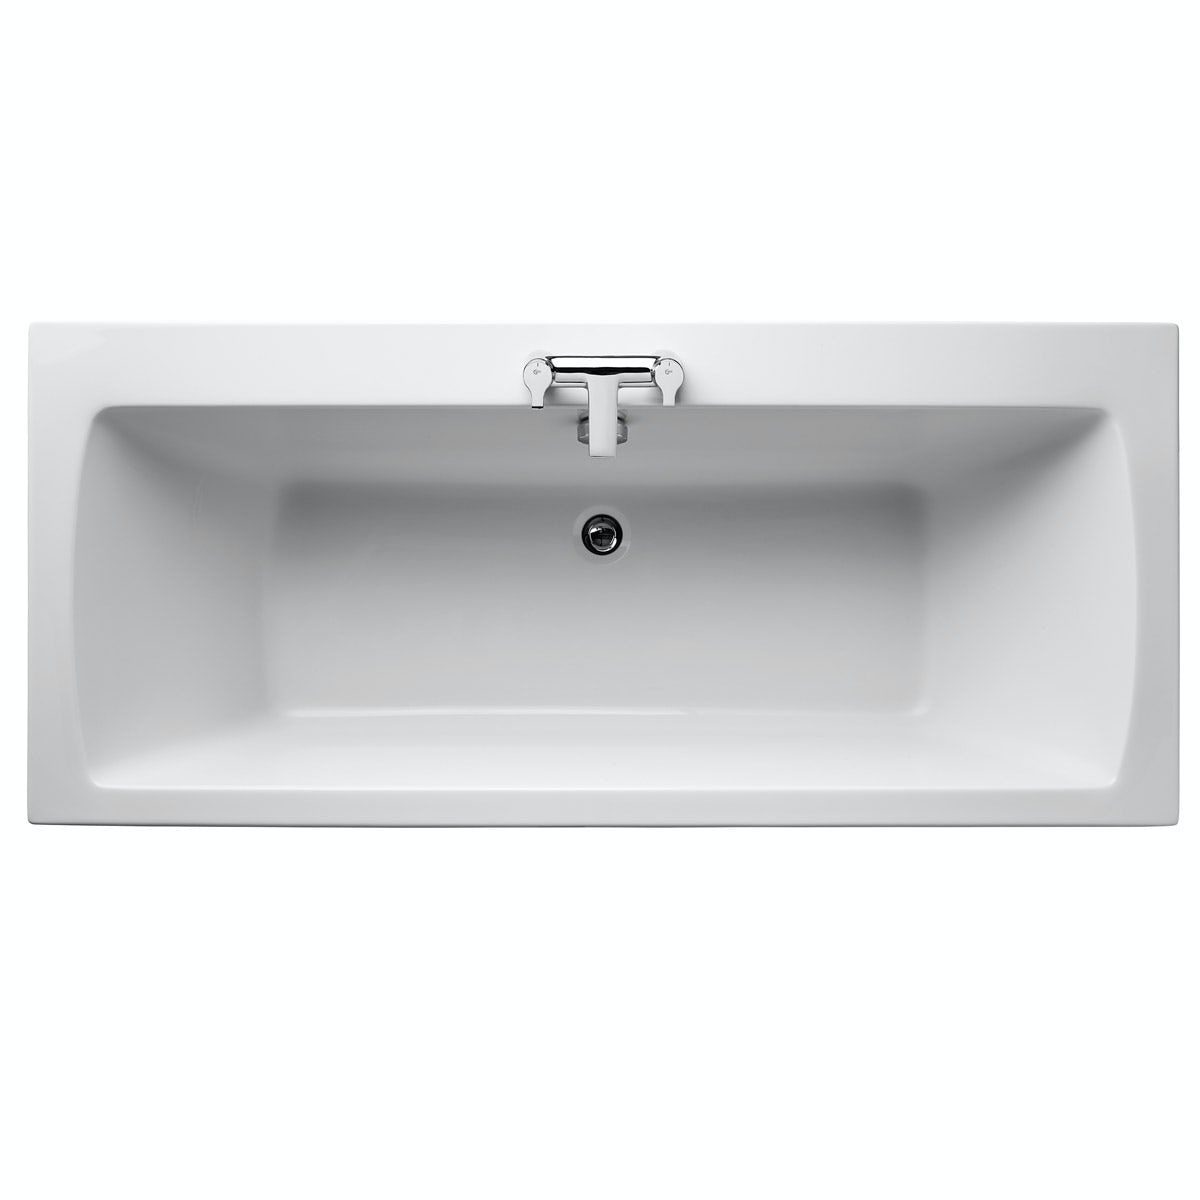 Ideal Standard Tempo double ended bath with front panel 1700 x 750